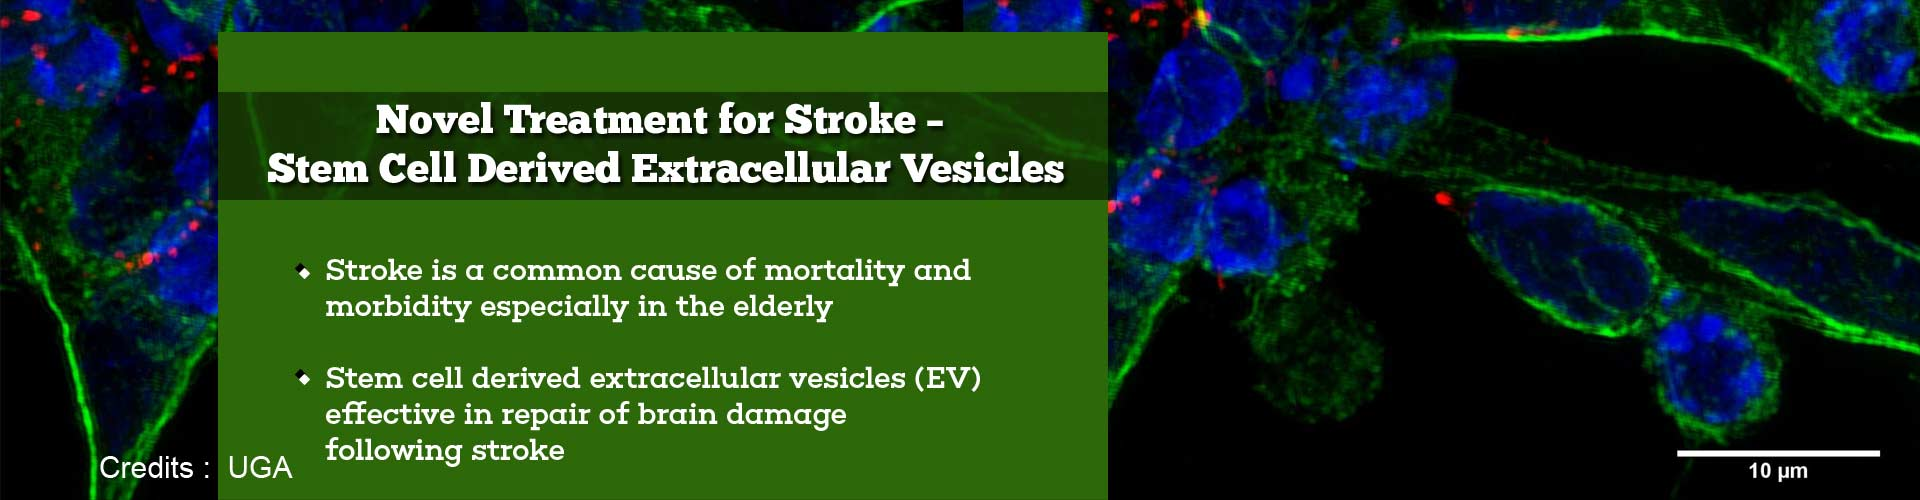 New Stem Cell-Based Treatment Accelerates Brain Tissue Healing In Stroke